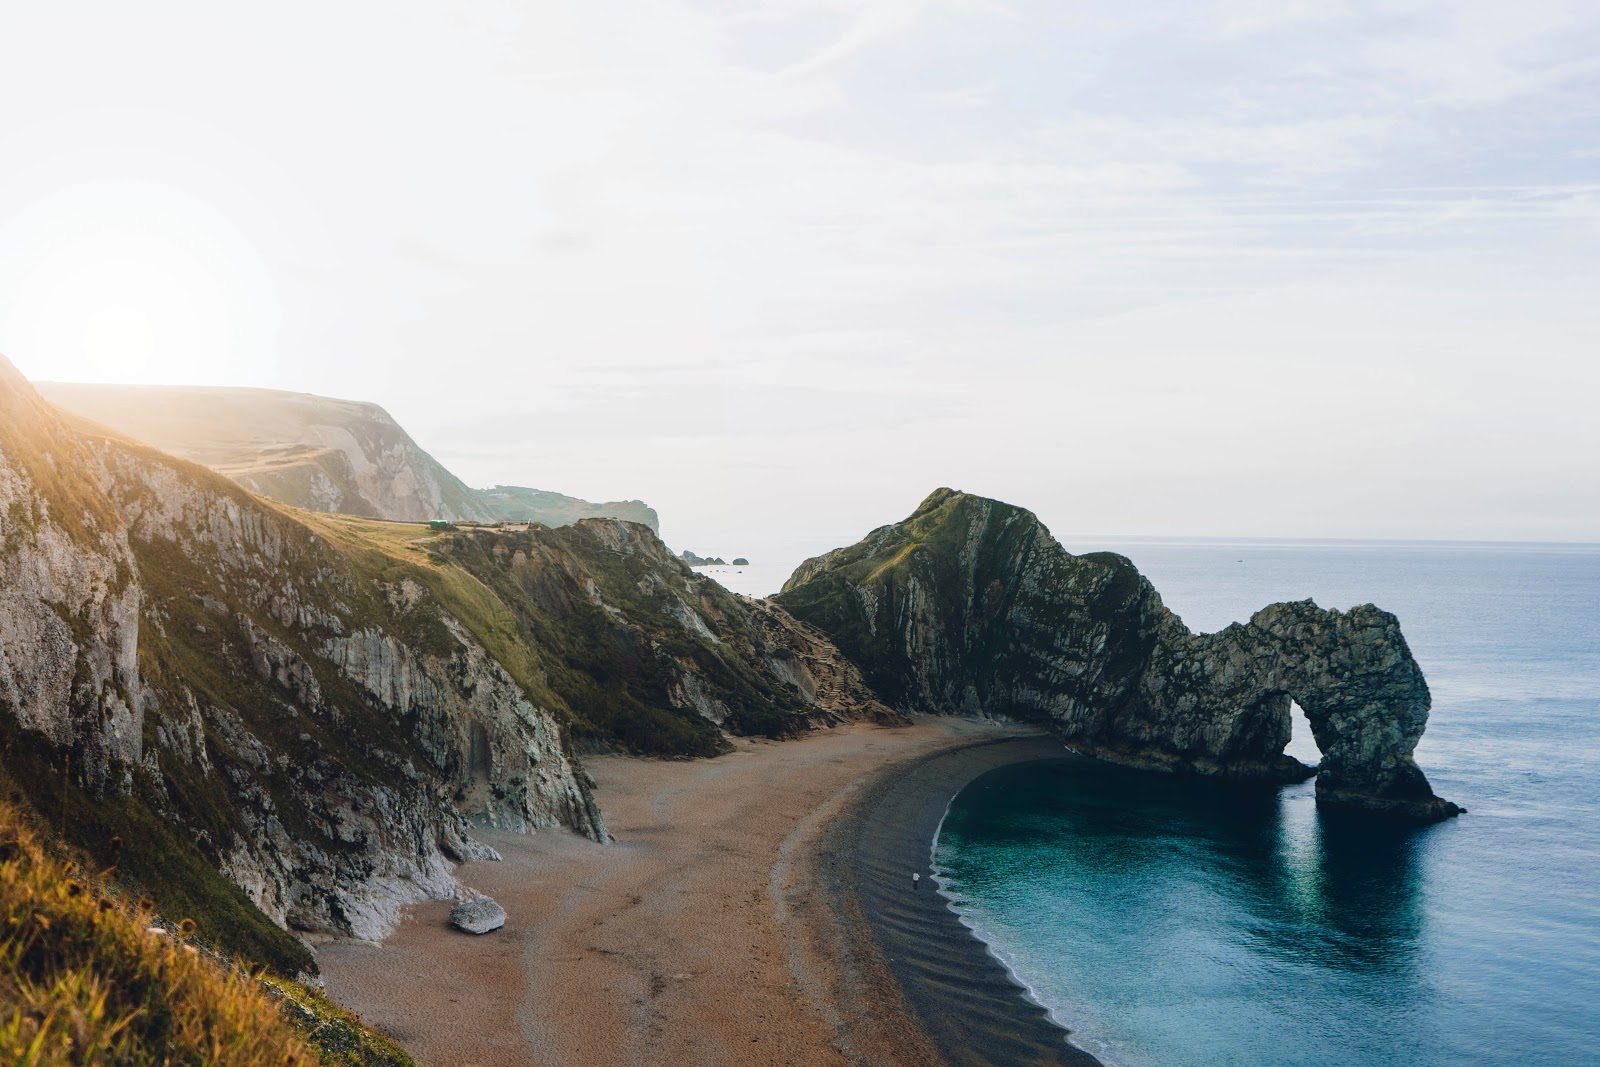 a particularly challenging part of Jurassic Coast route in Cornwall, UK